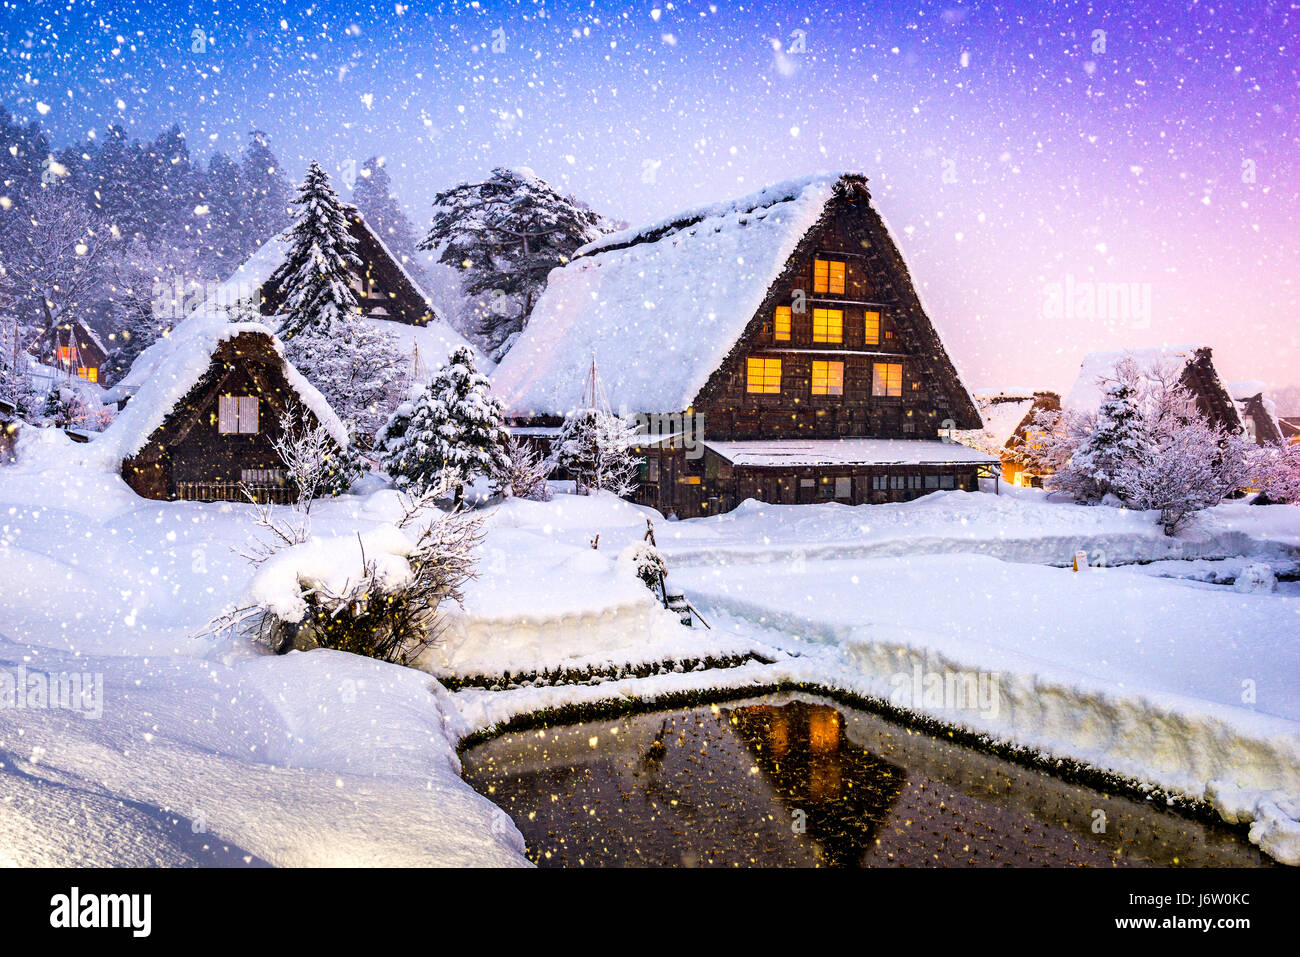 Historischen Winterdorf Shirakawago, Japan. Stockbild